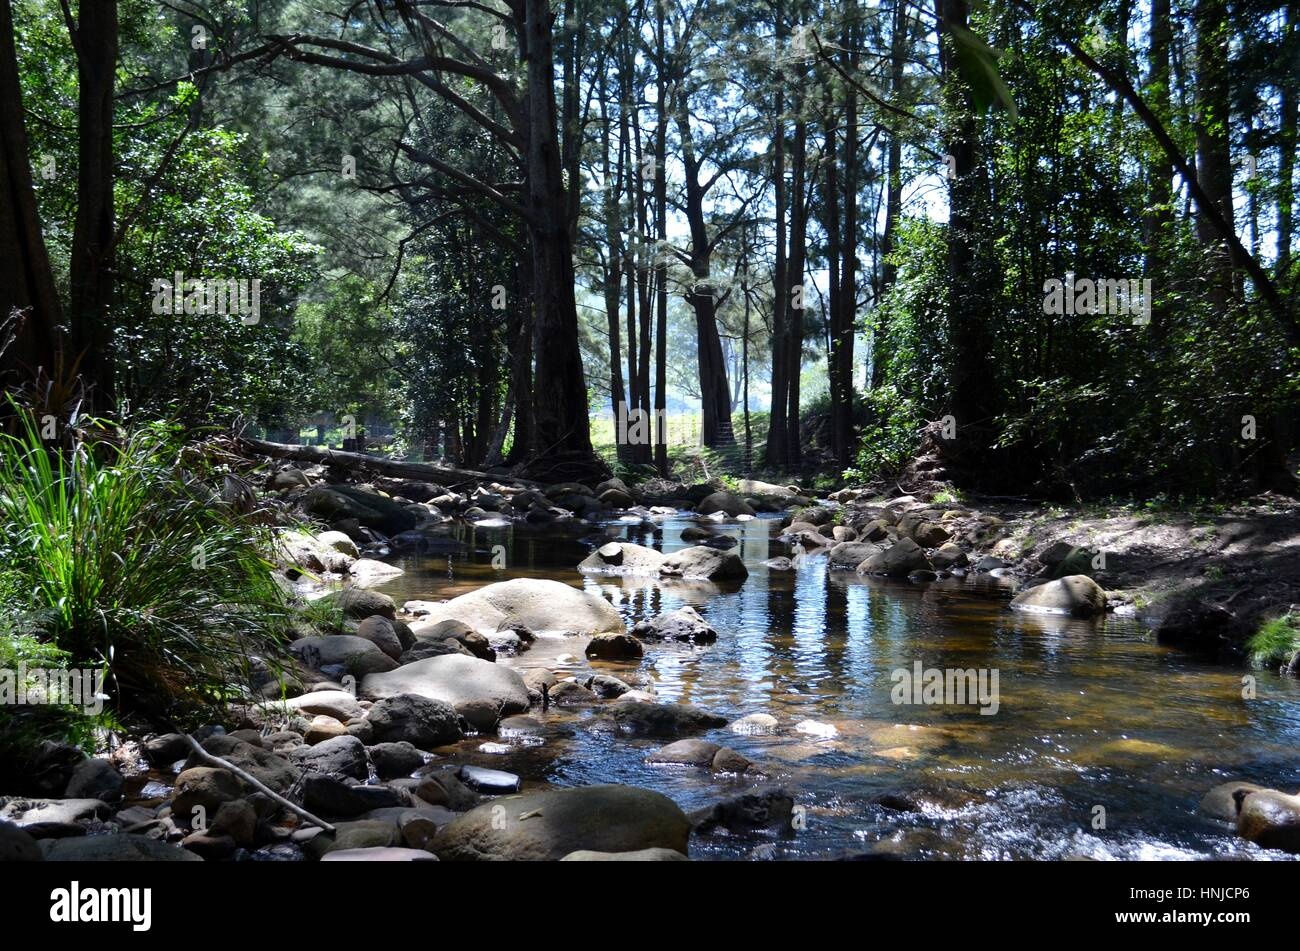 Capturing the beauty of natural bushland by the river in Australia - Stock Image